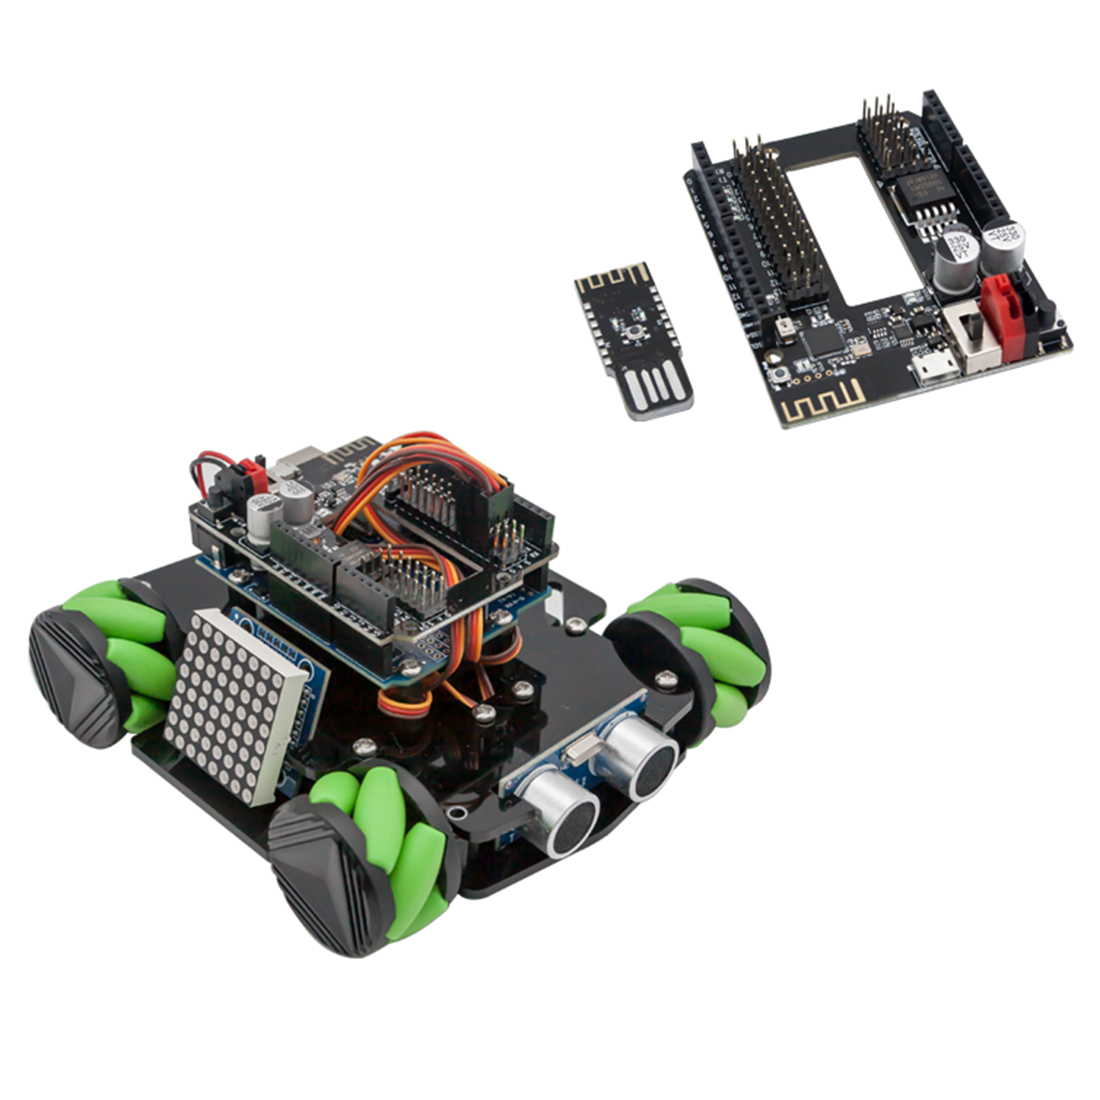 DIY Obstacle Avoidance Smart Programmable Robot Car Educational Learning Kit With Mecanum Wheels For Arduino UNO - Set C